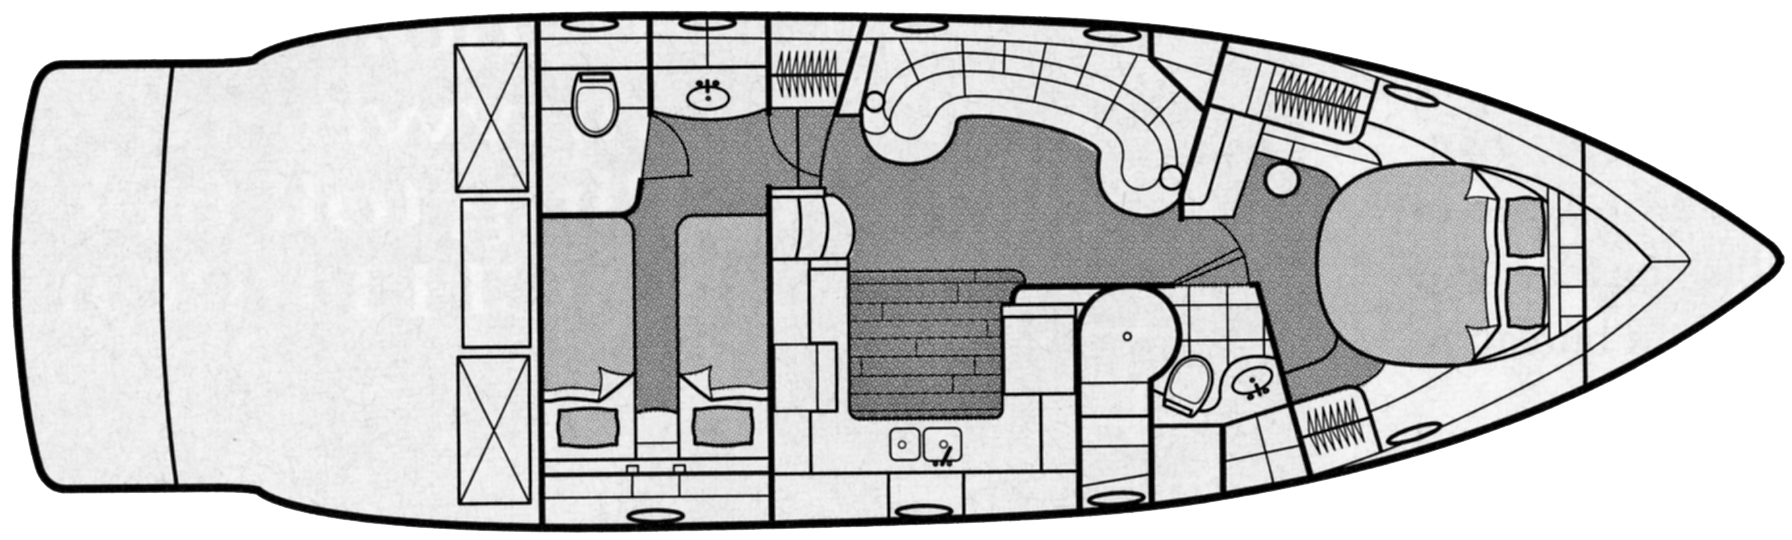 48 Yacht Floor Plan 1